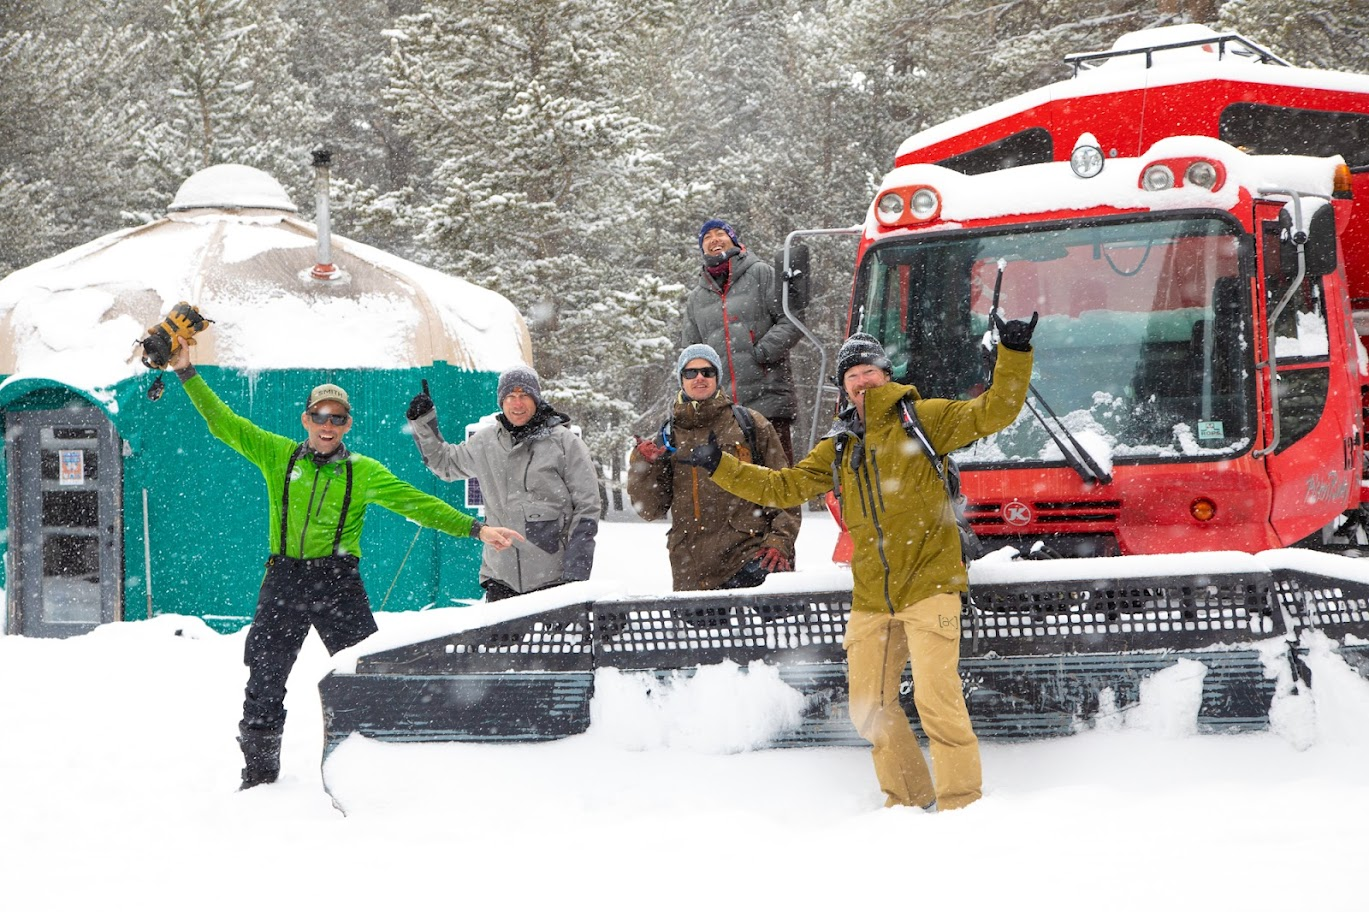 Clients stoked about High Sierra snowcats